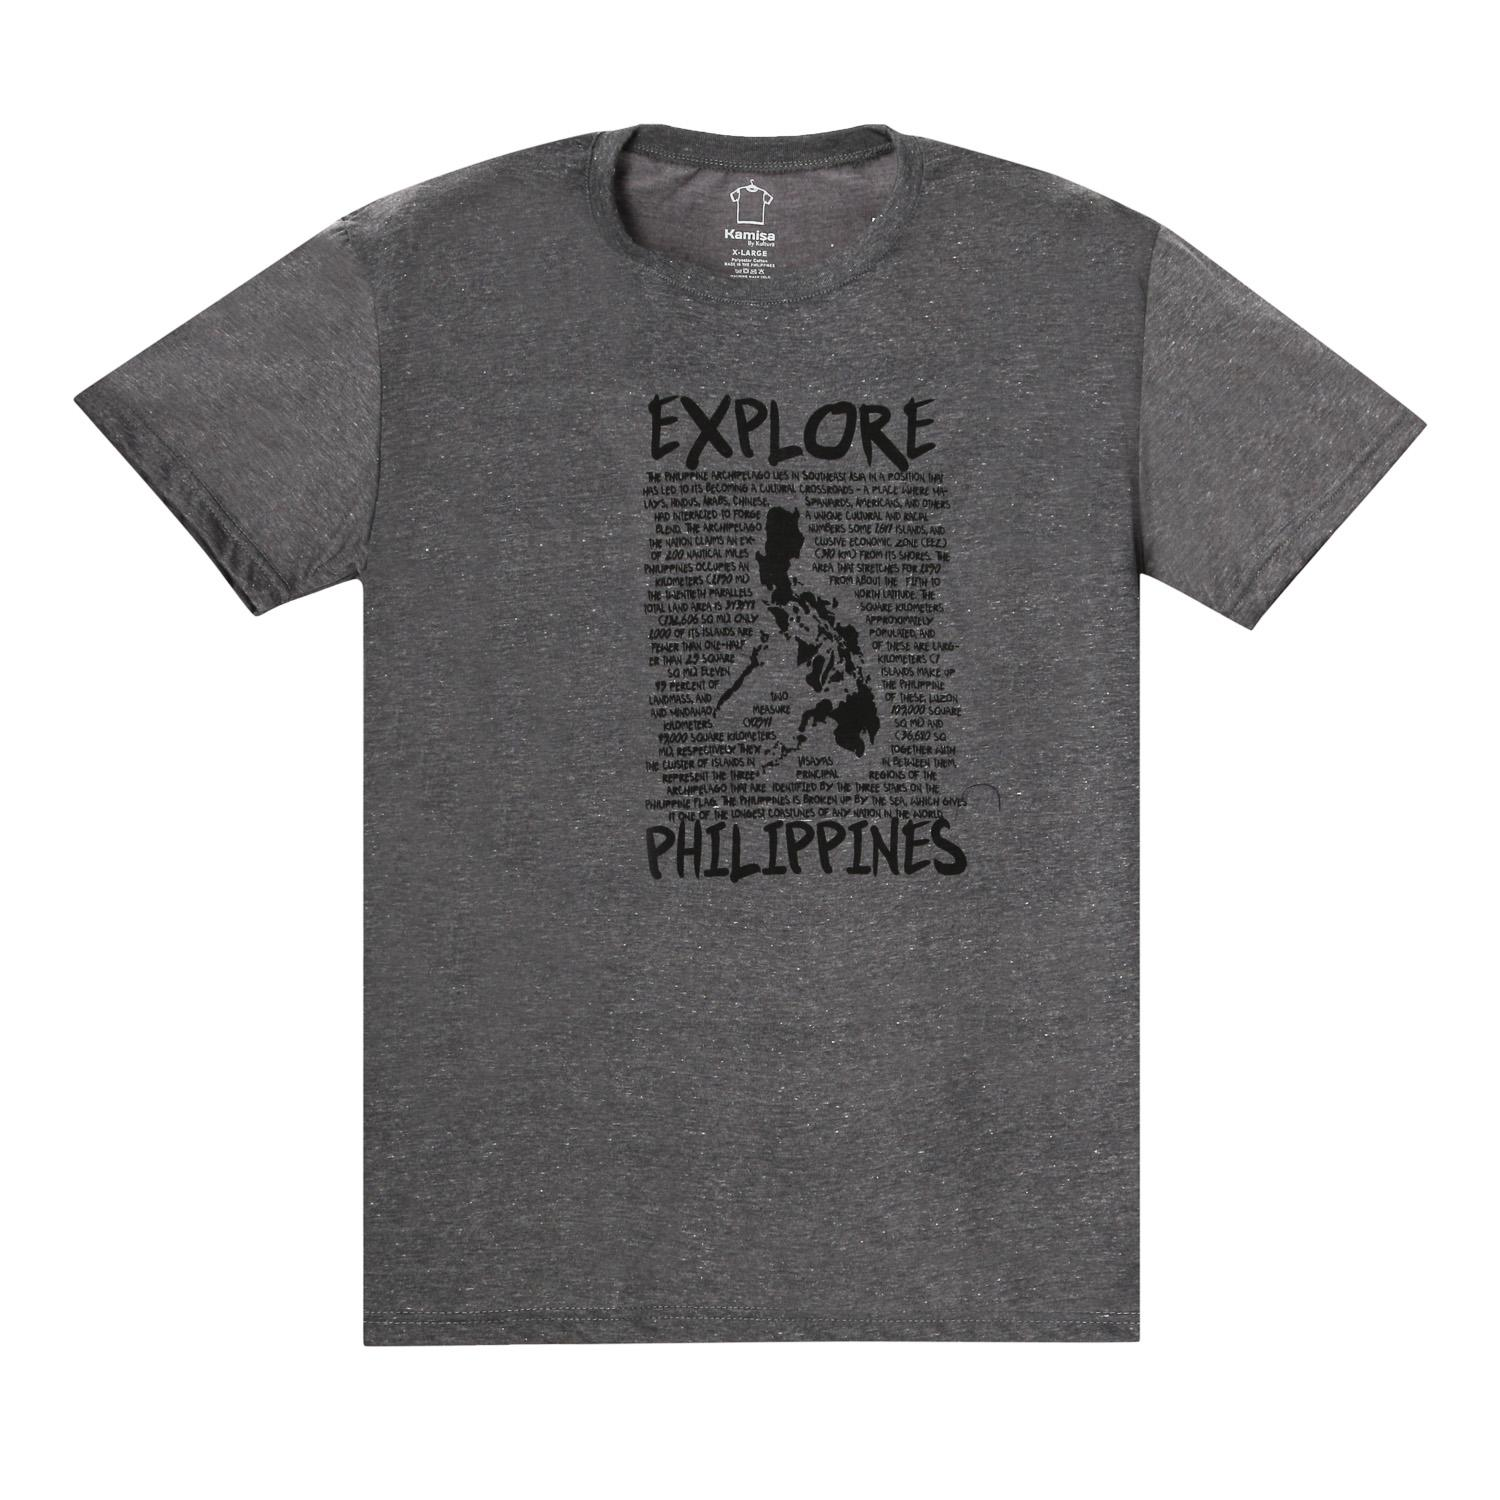 Kamisa By Kultura Mens Graphic Tee in Gray